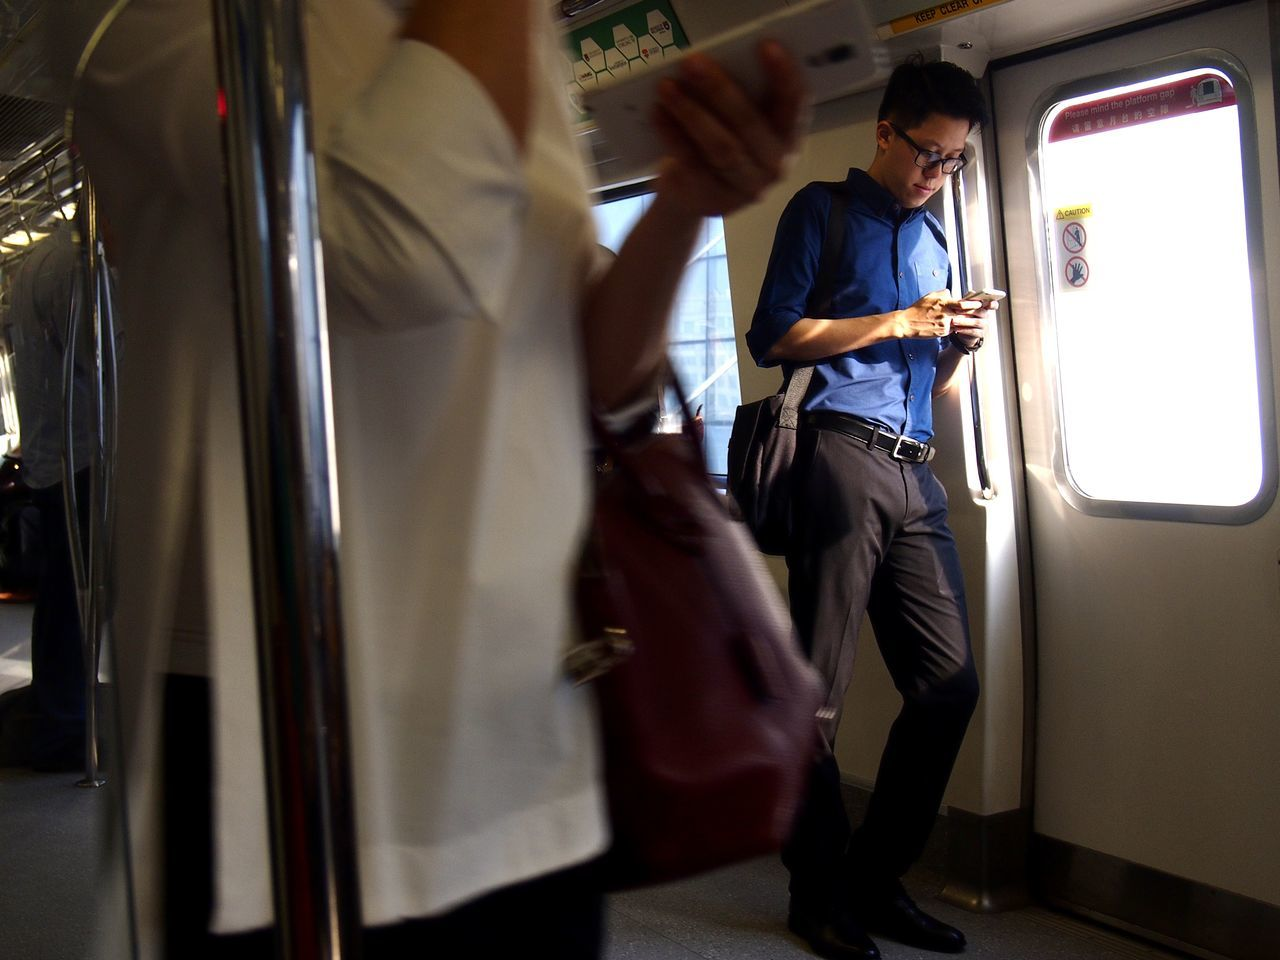 commuter in a train using his smartphone Adult Cellphone Commute Commuter Commuter Train Internet Male Online  Passenger Passenger Train People Person Smartphone Streetphotography Surf Technology The Street Photographer - 2017 EyeEm Awards Touchscreen Transportation Web